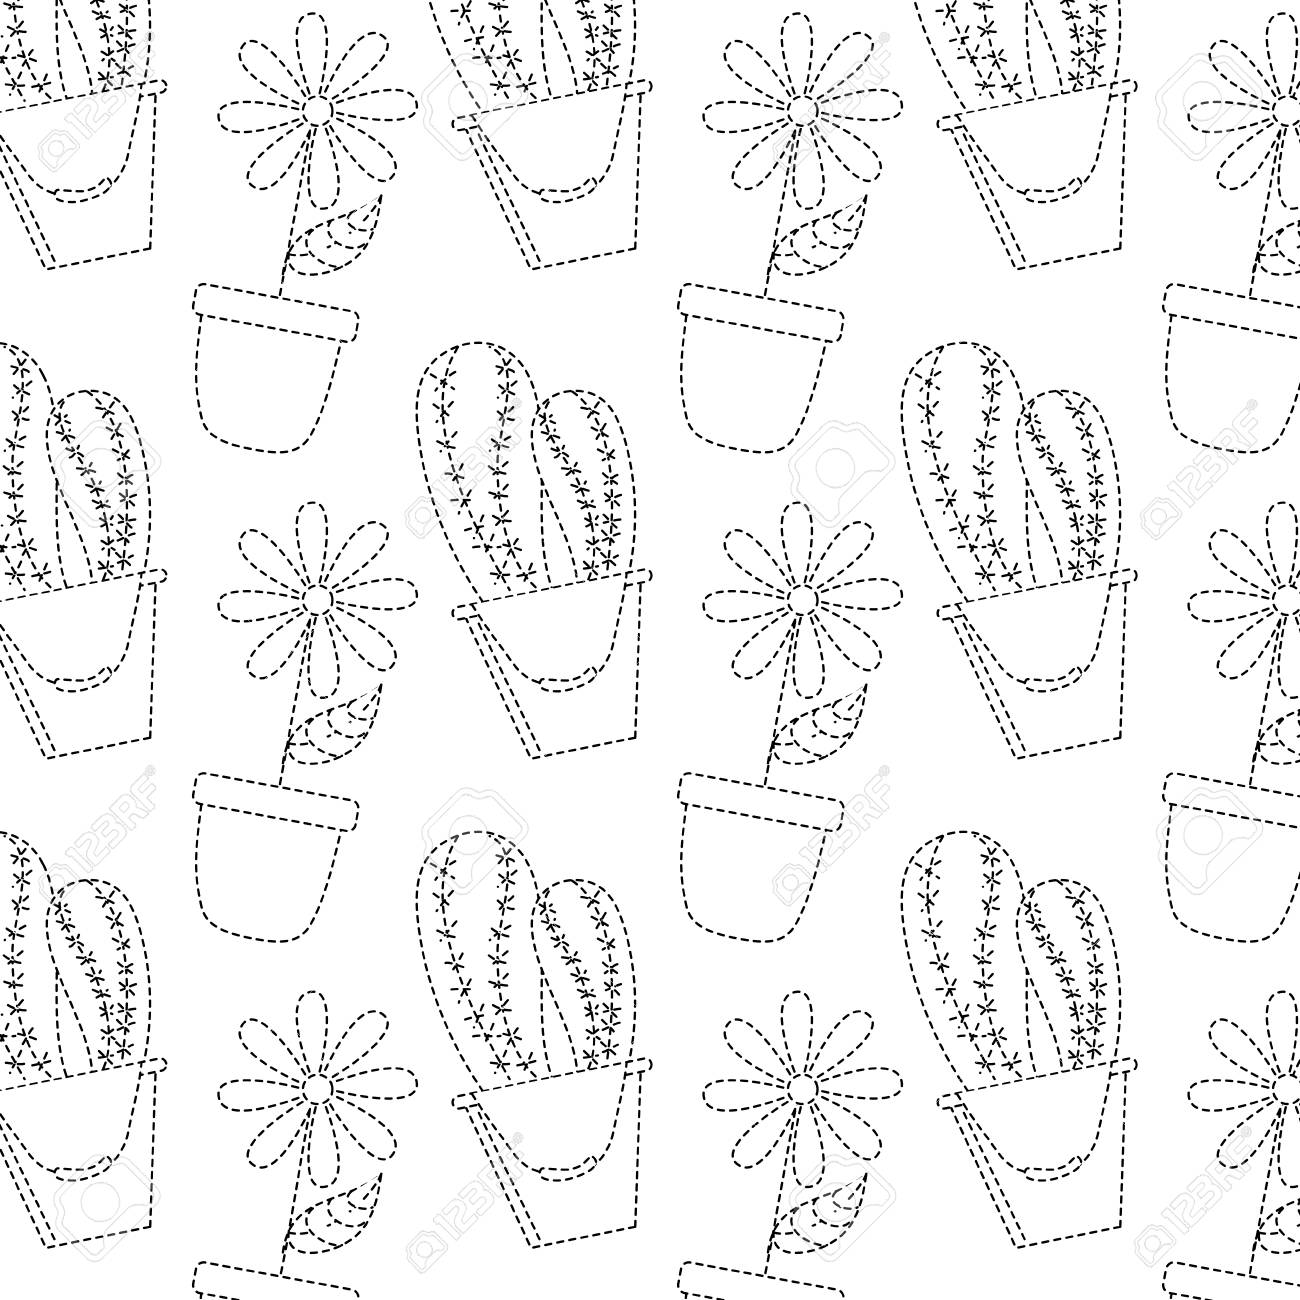 Decorative Potted Flower And Cactus Plant Wallpaper Vector Illustration Royalty Free Cliparts Vectors And Stock Illustration Image 95335977